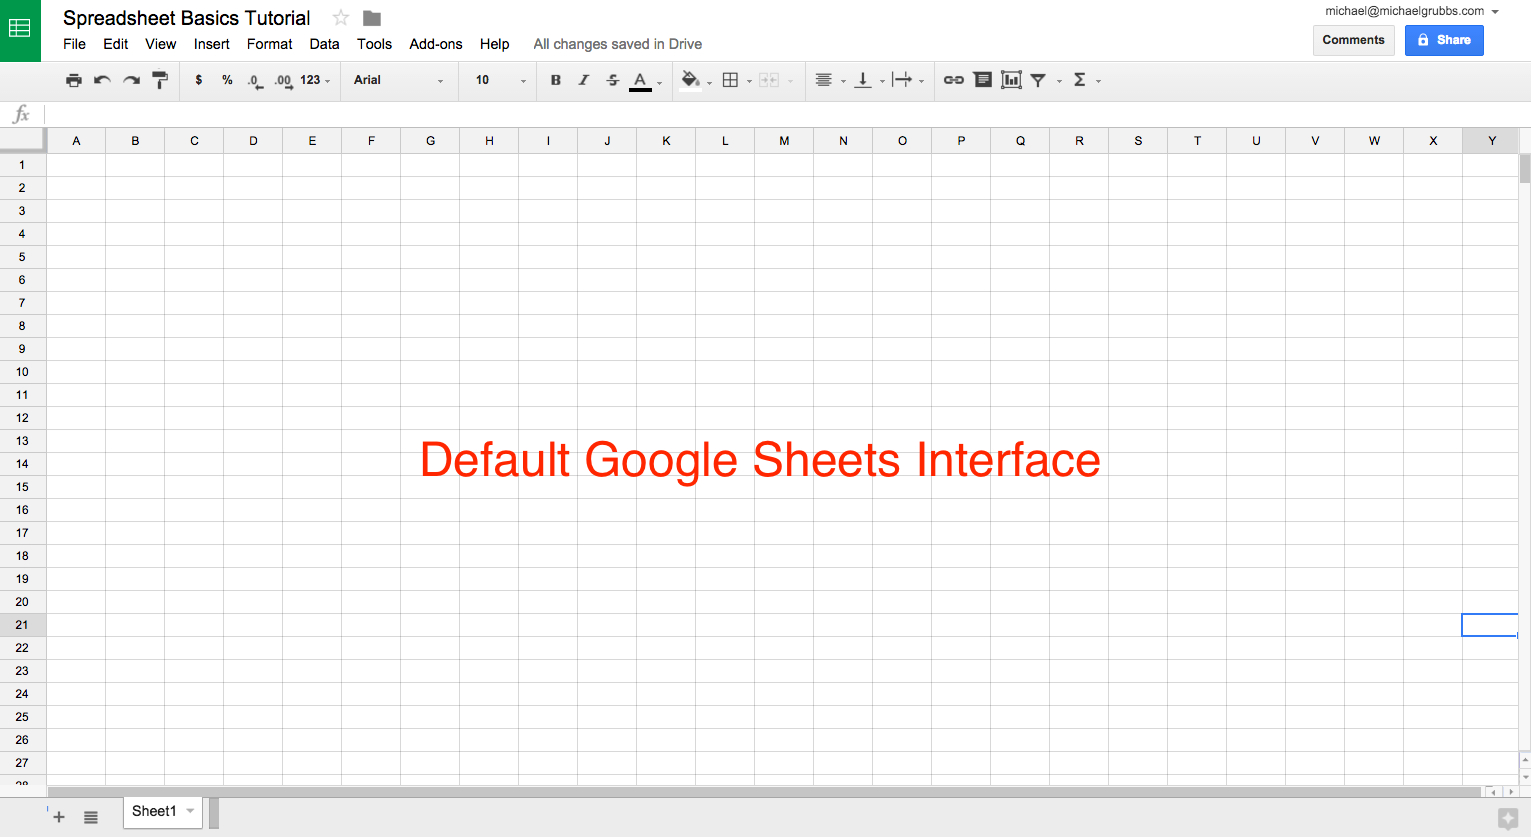 Making A Spreadsheet In Word For Google Sheets 101: The Beginner's Guide To Online Spreadsheets  The